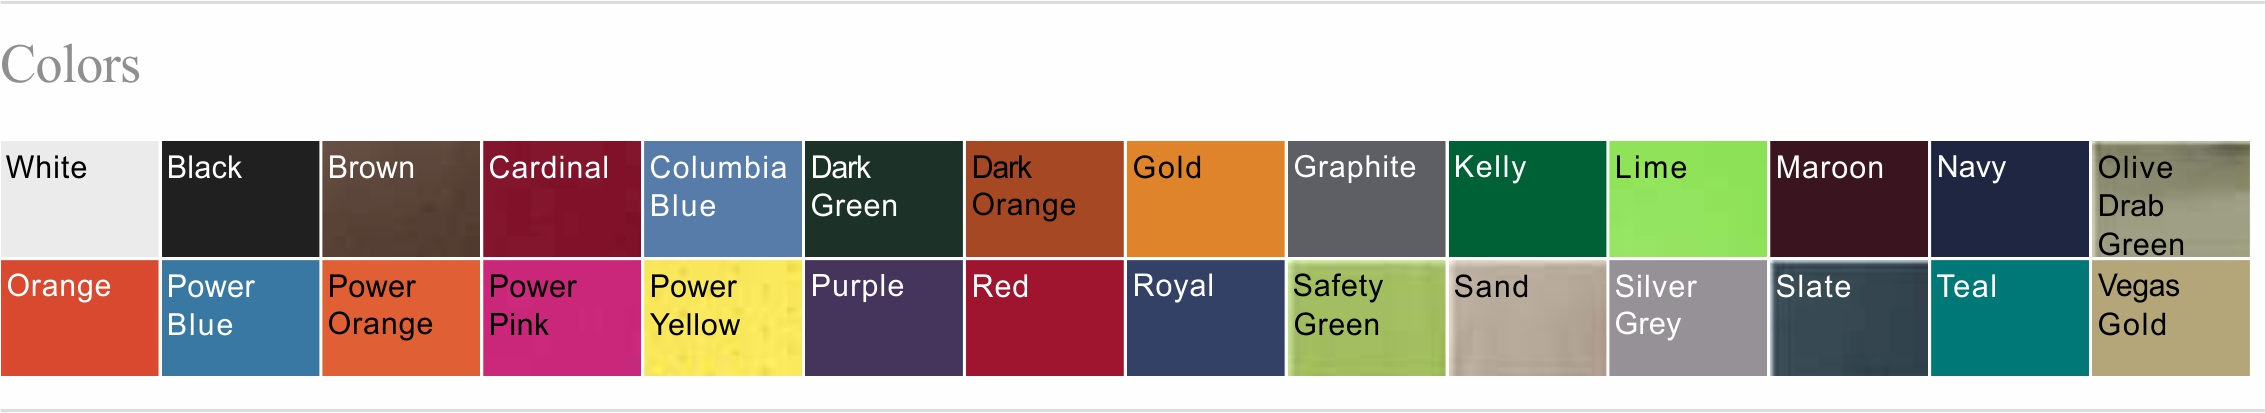 790 Color Chart